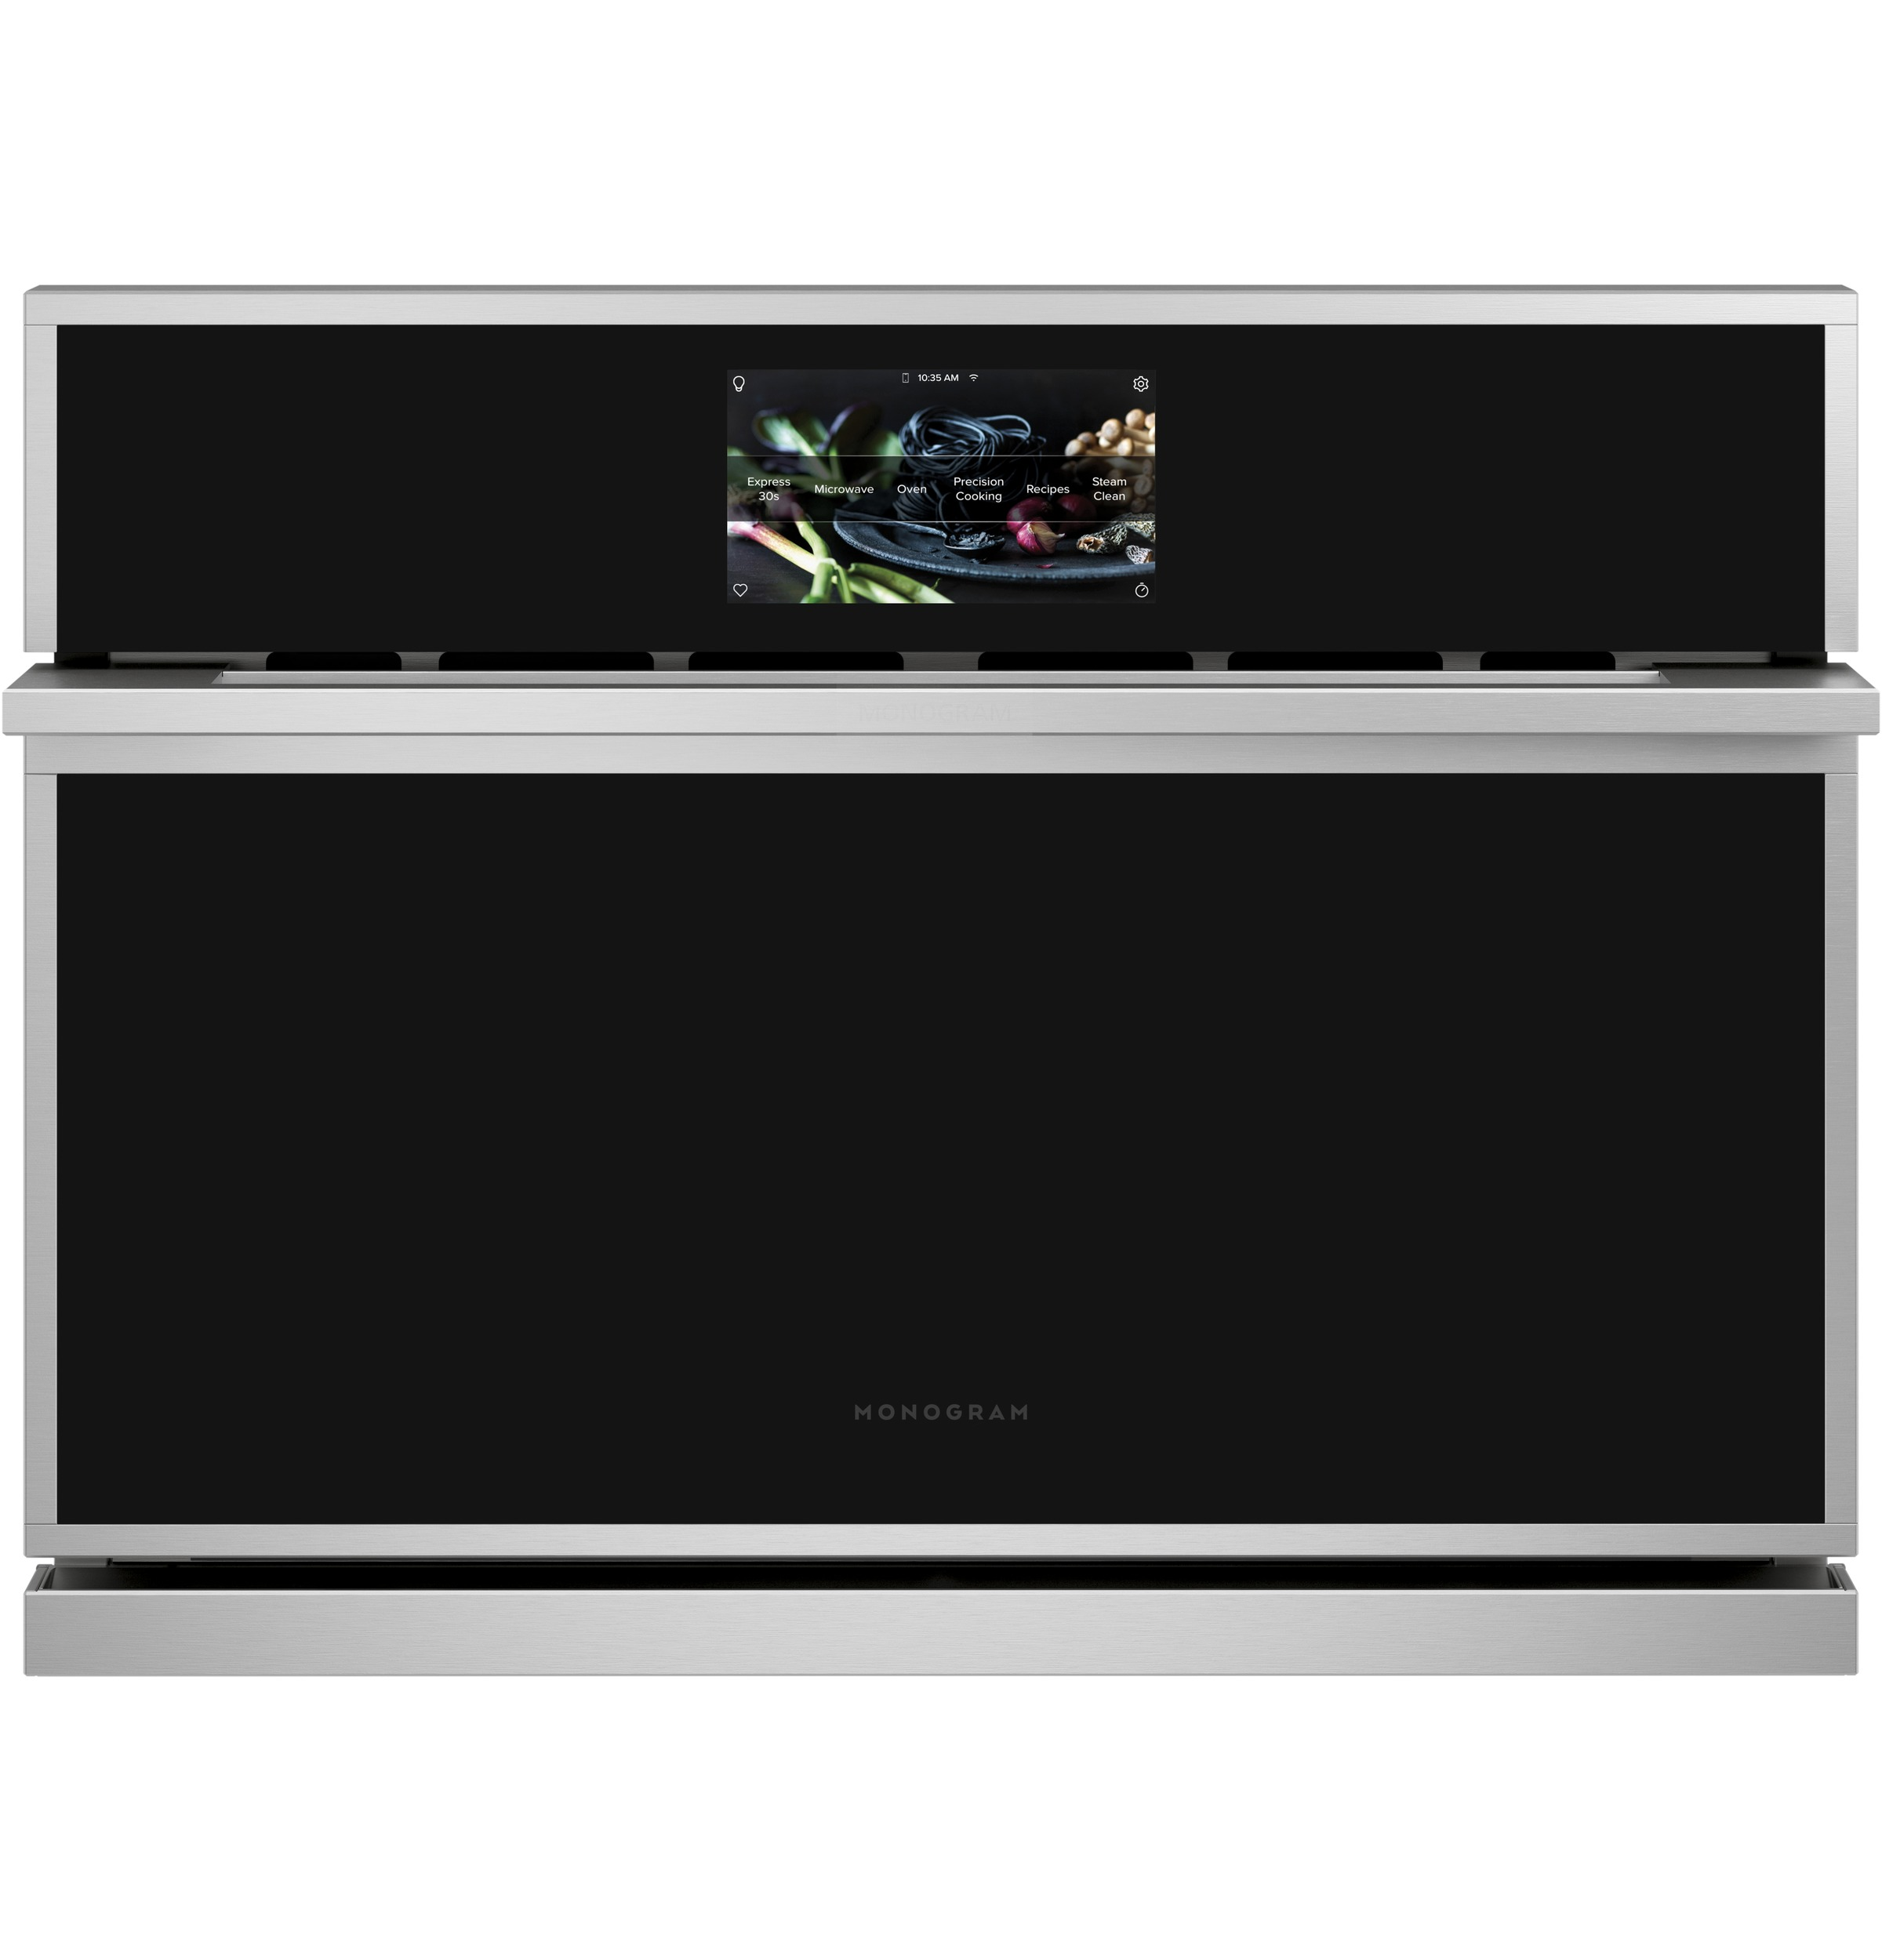 """Monogram Monogram 27"""" Smart Five in One Wall Oven with 120V Advantium® Technology"""